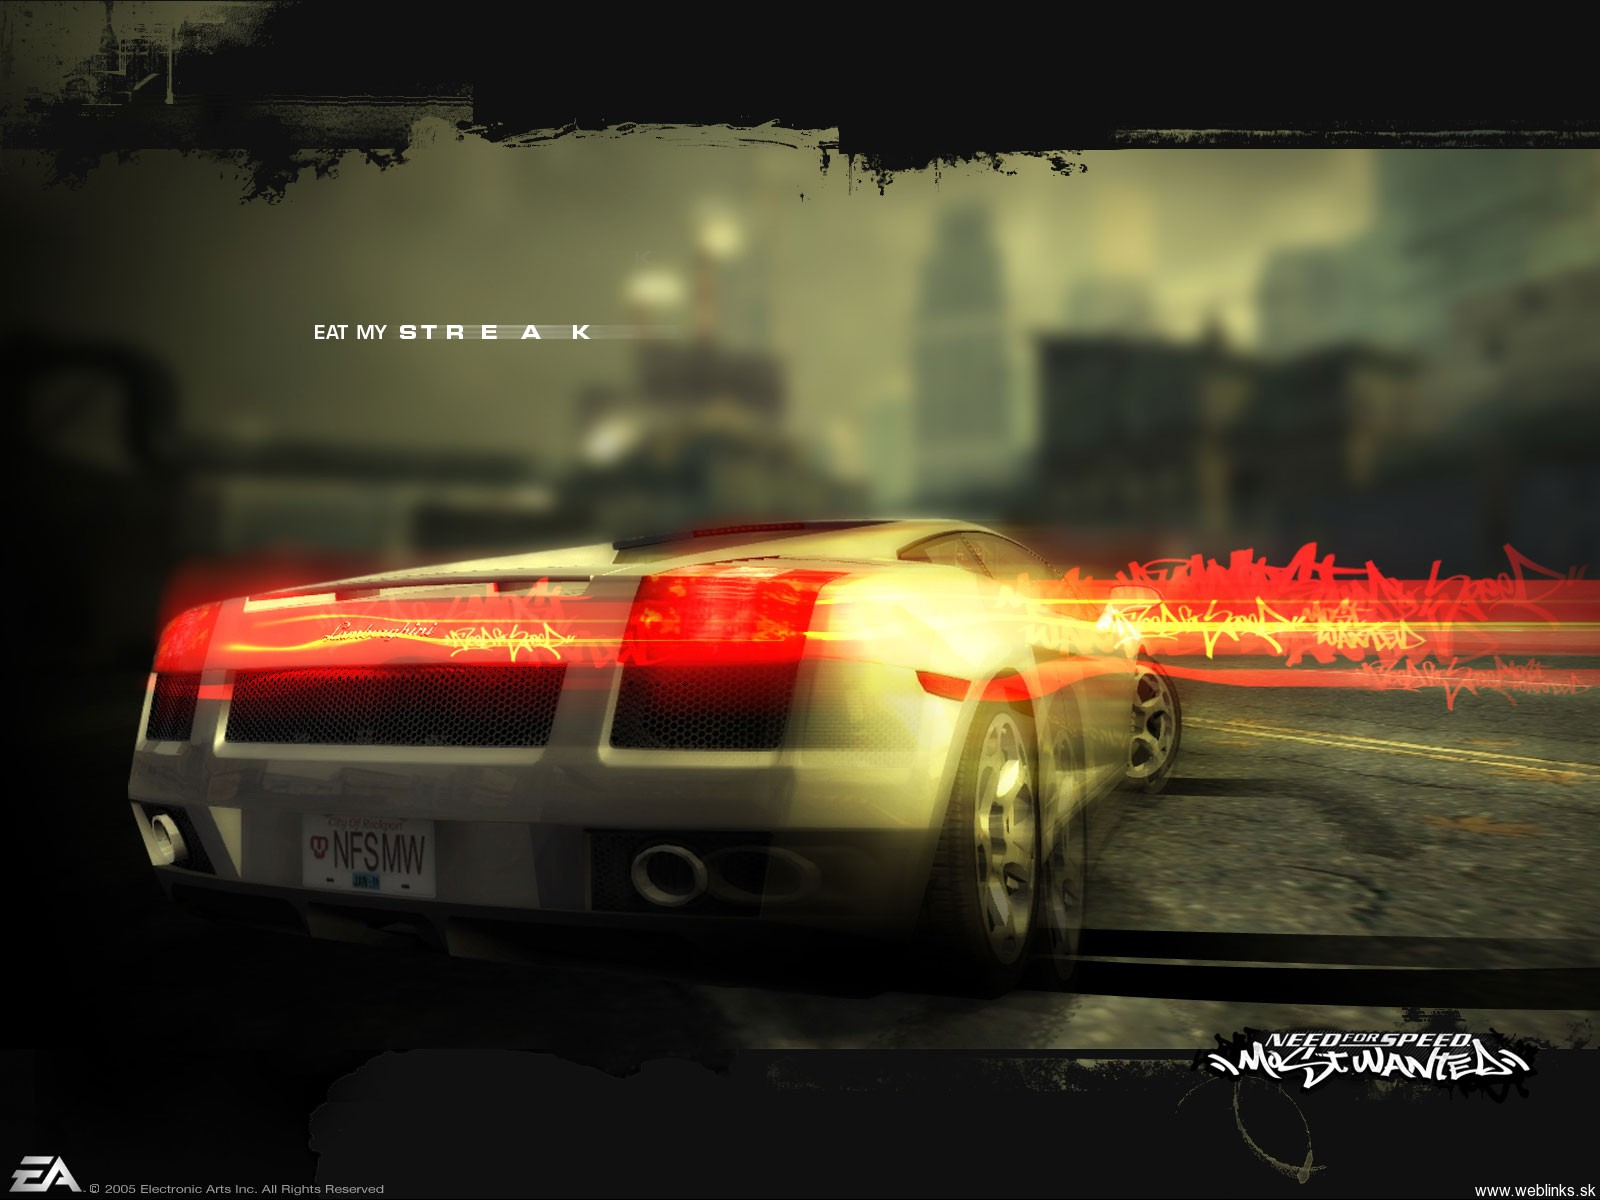 weblinks_sk need for speed wallapper6